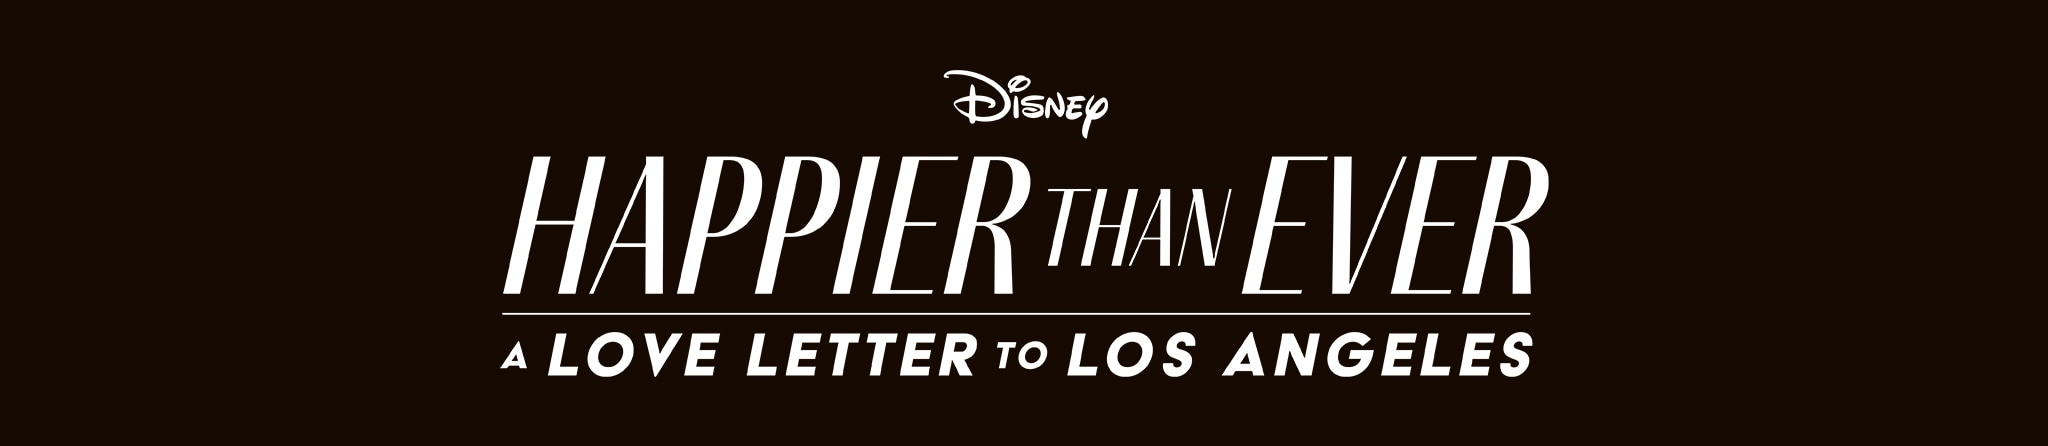 Disney | Happier Than Ever: A Love Letter to Los Angeles